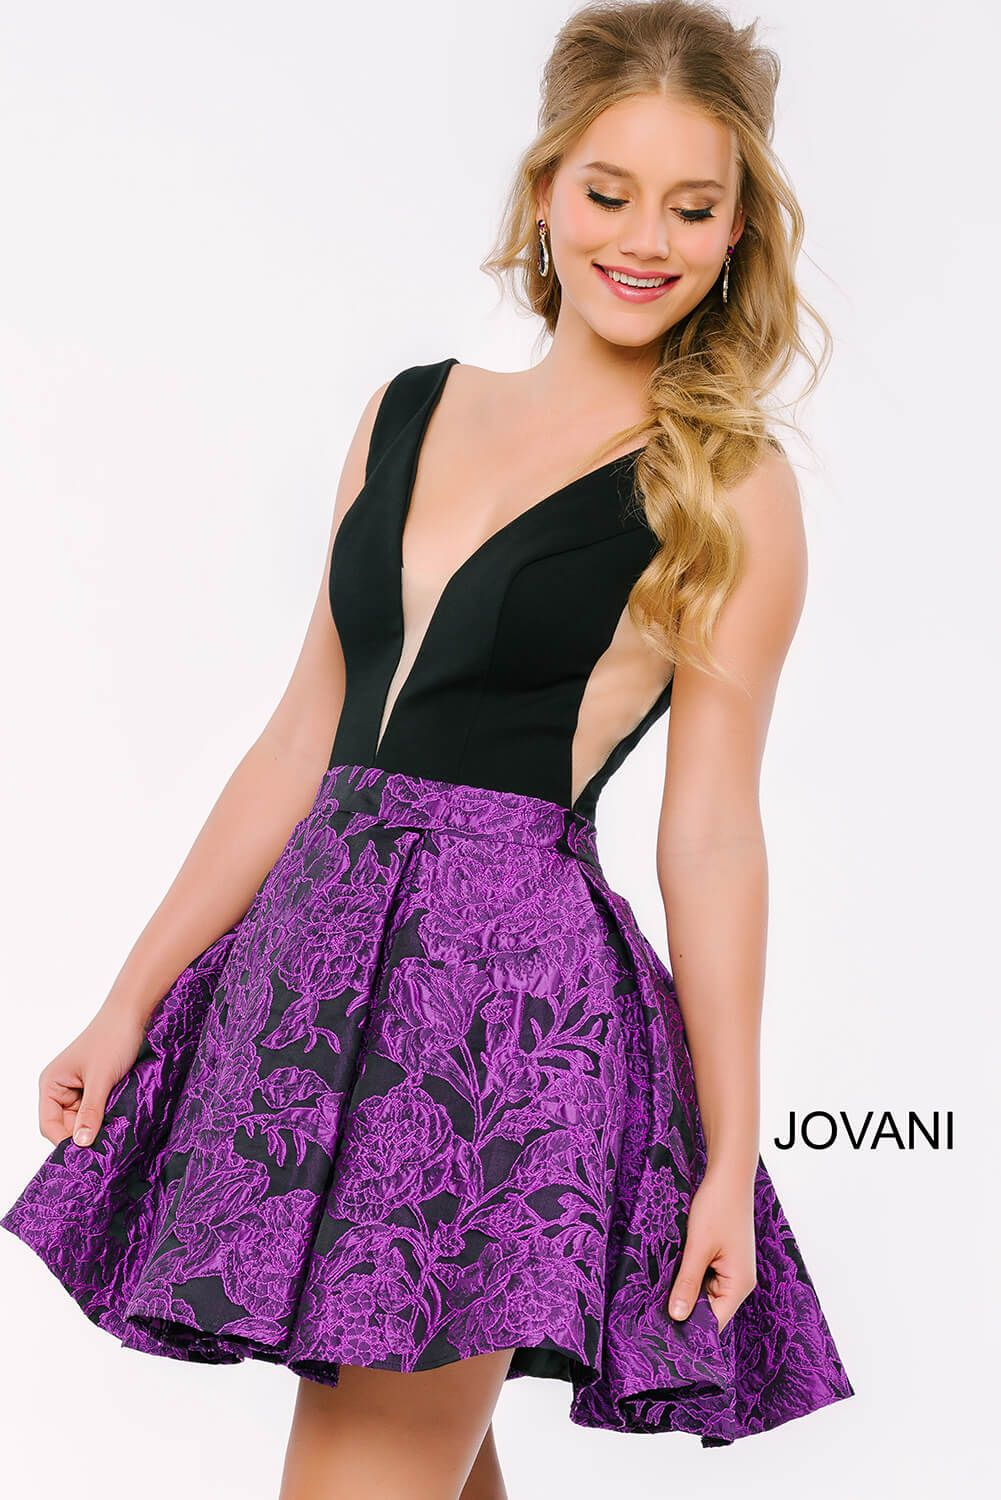 Dropping it low in this #jovani 42788 floral printed plunging ...